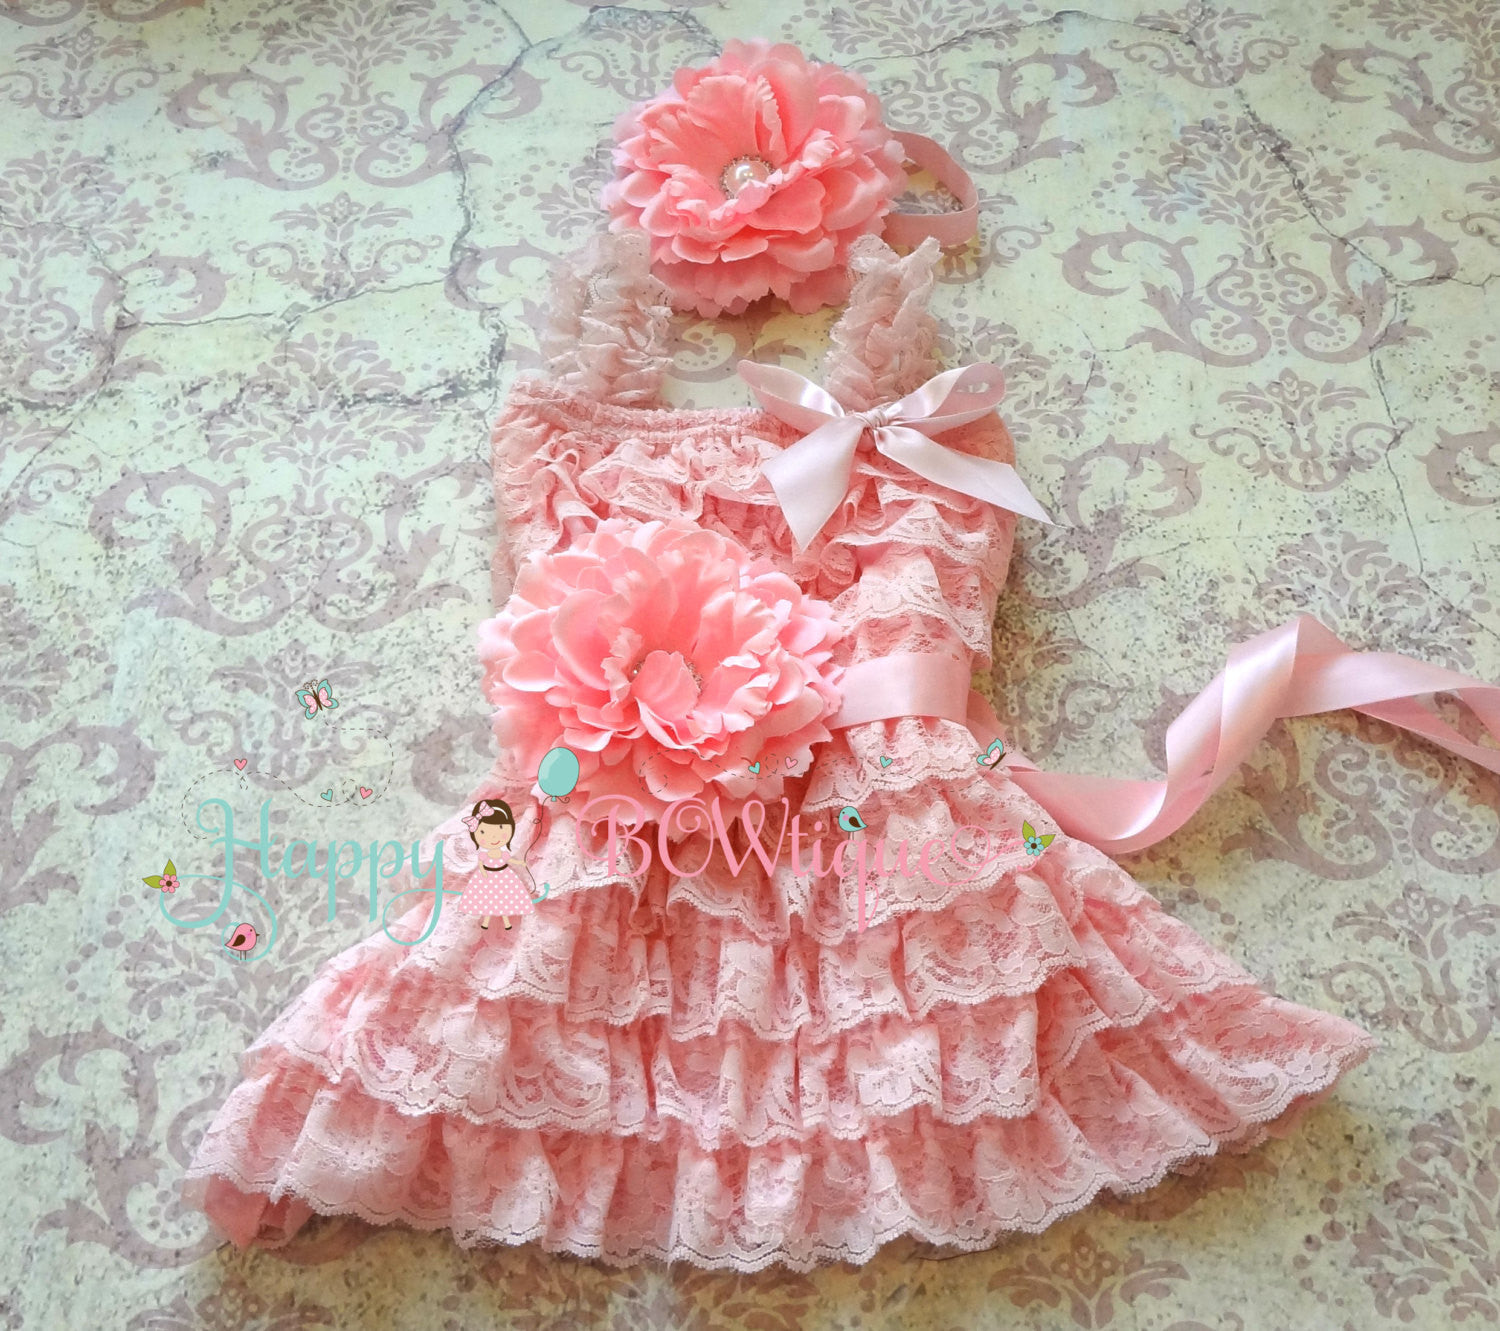 Fuchsia Pink Flower Girl's Dress set/ Girl's Pink Lace Dress - Happy BOWtique - children's clothing, Baby Girl clothing